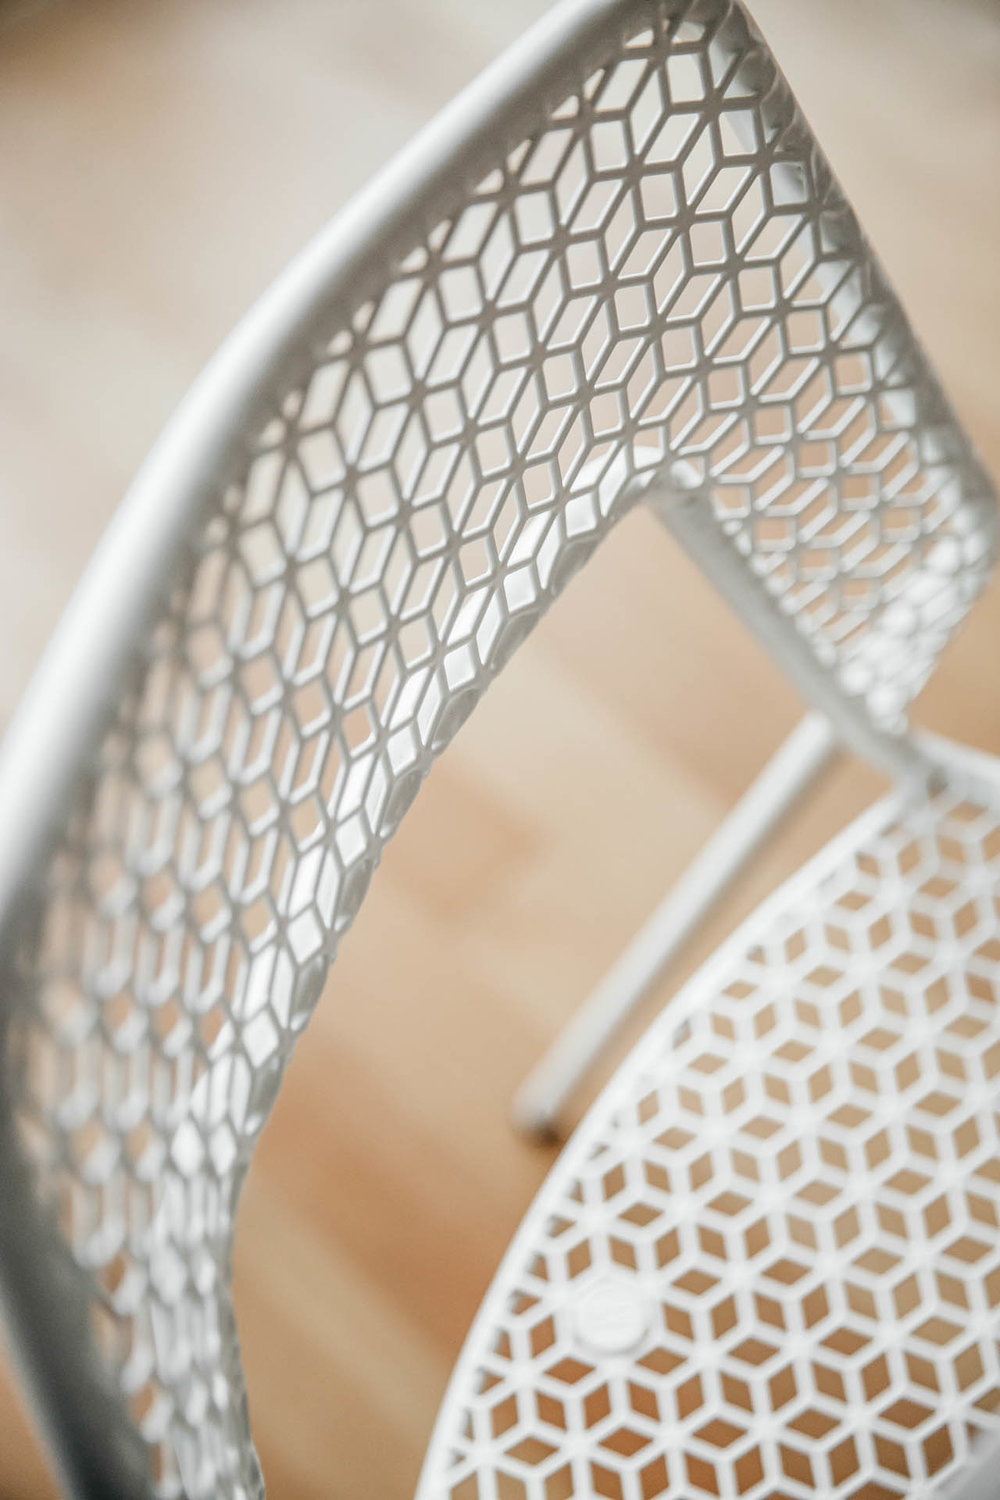 Silk_Road_Tea-15.jpg